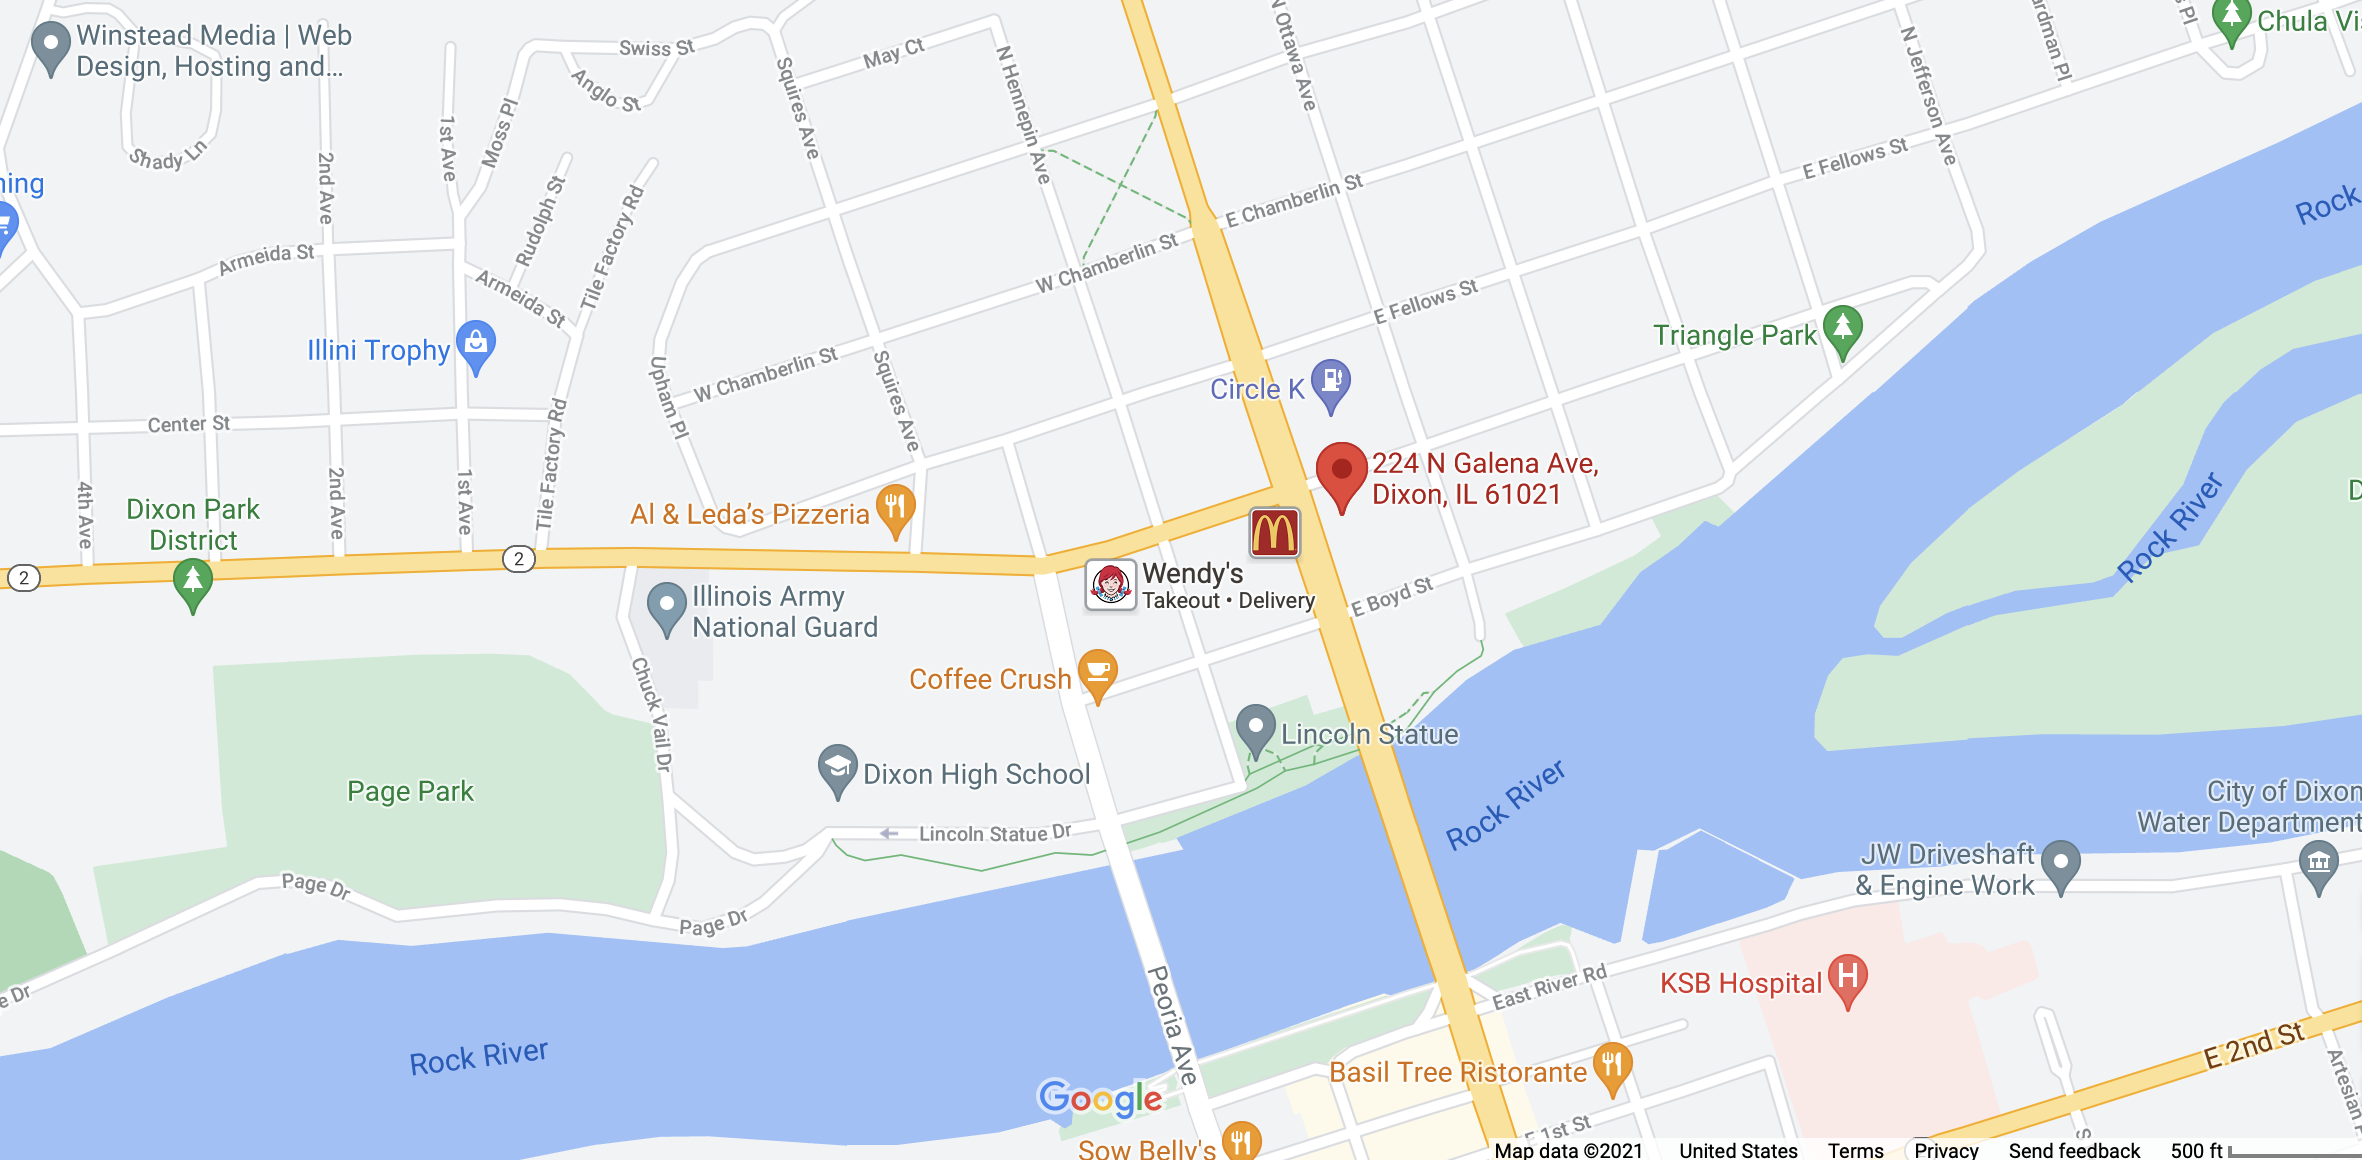 Google Map for this location.